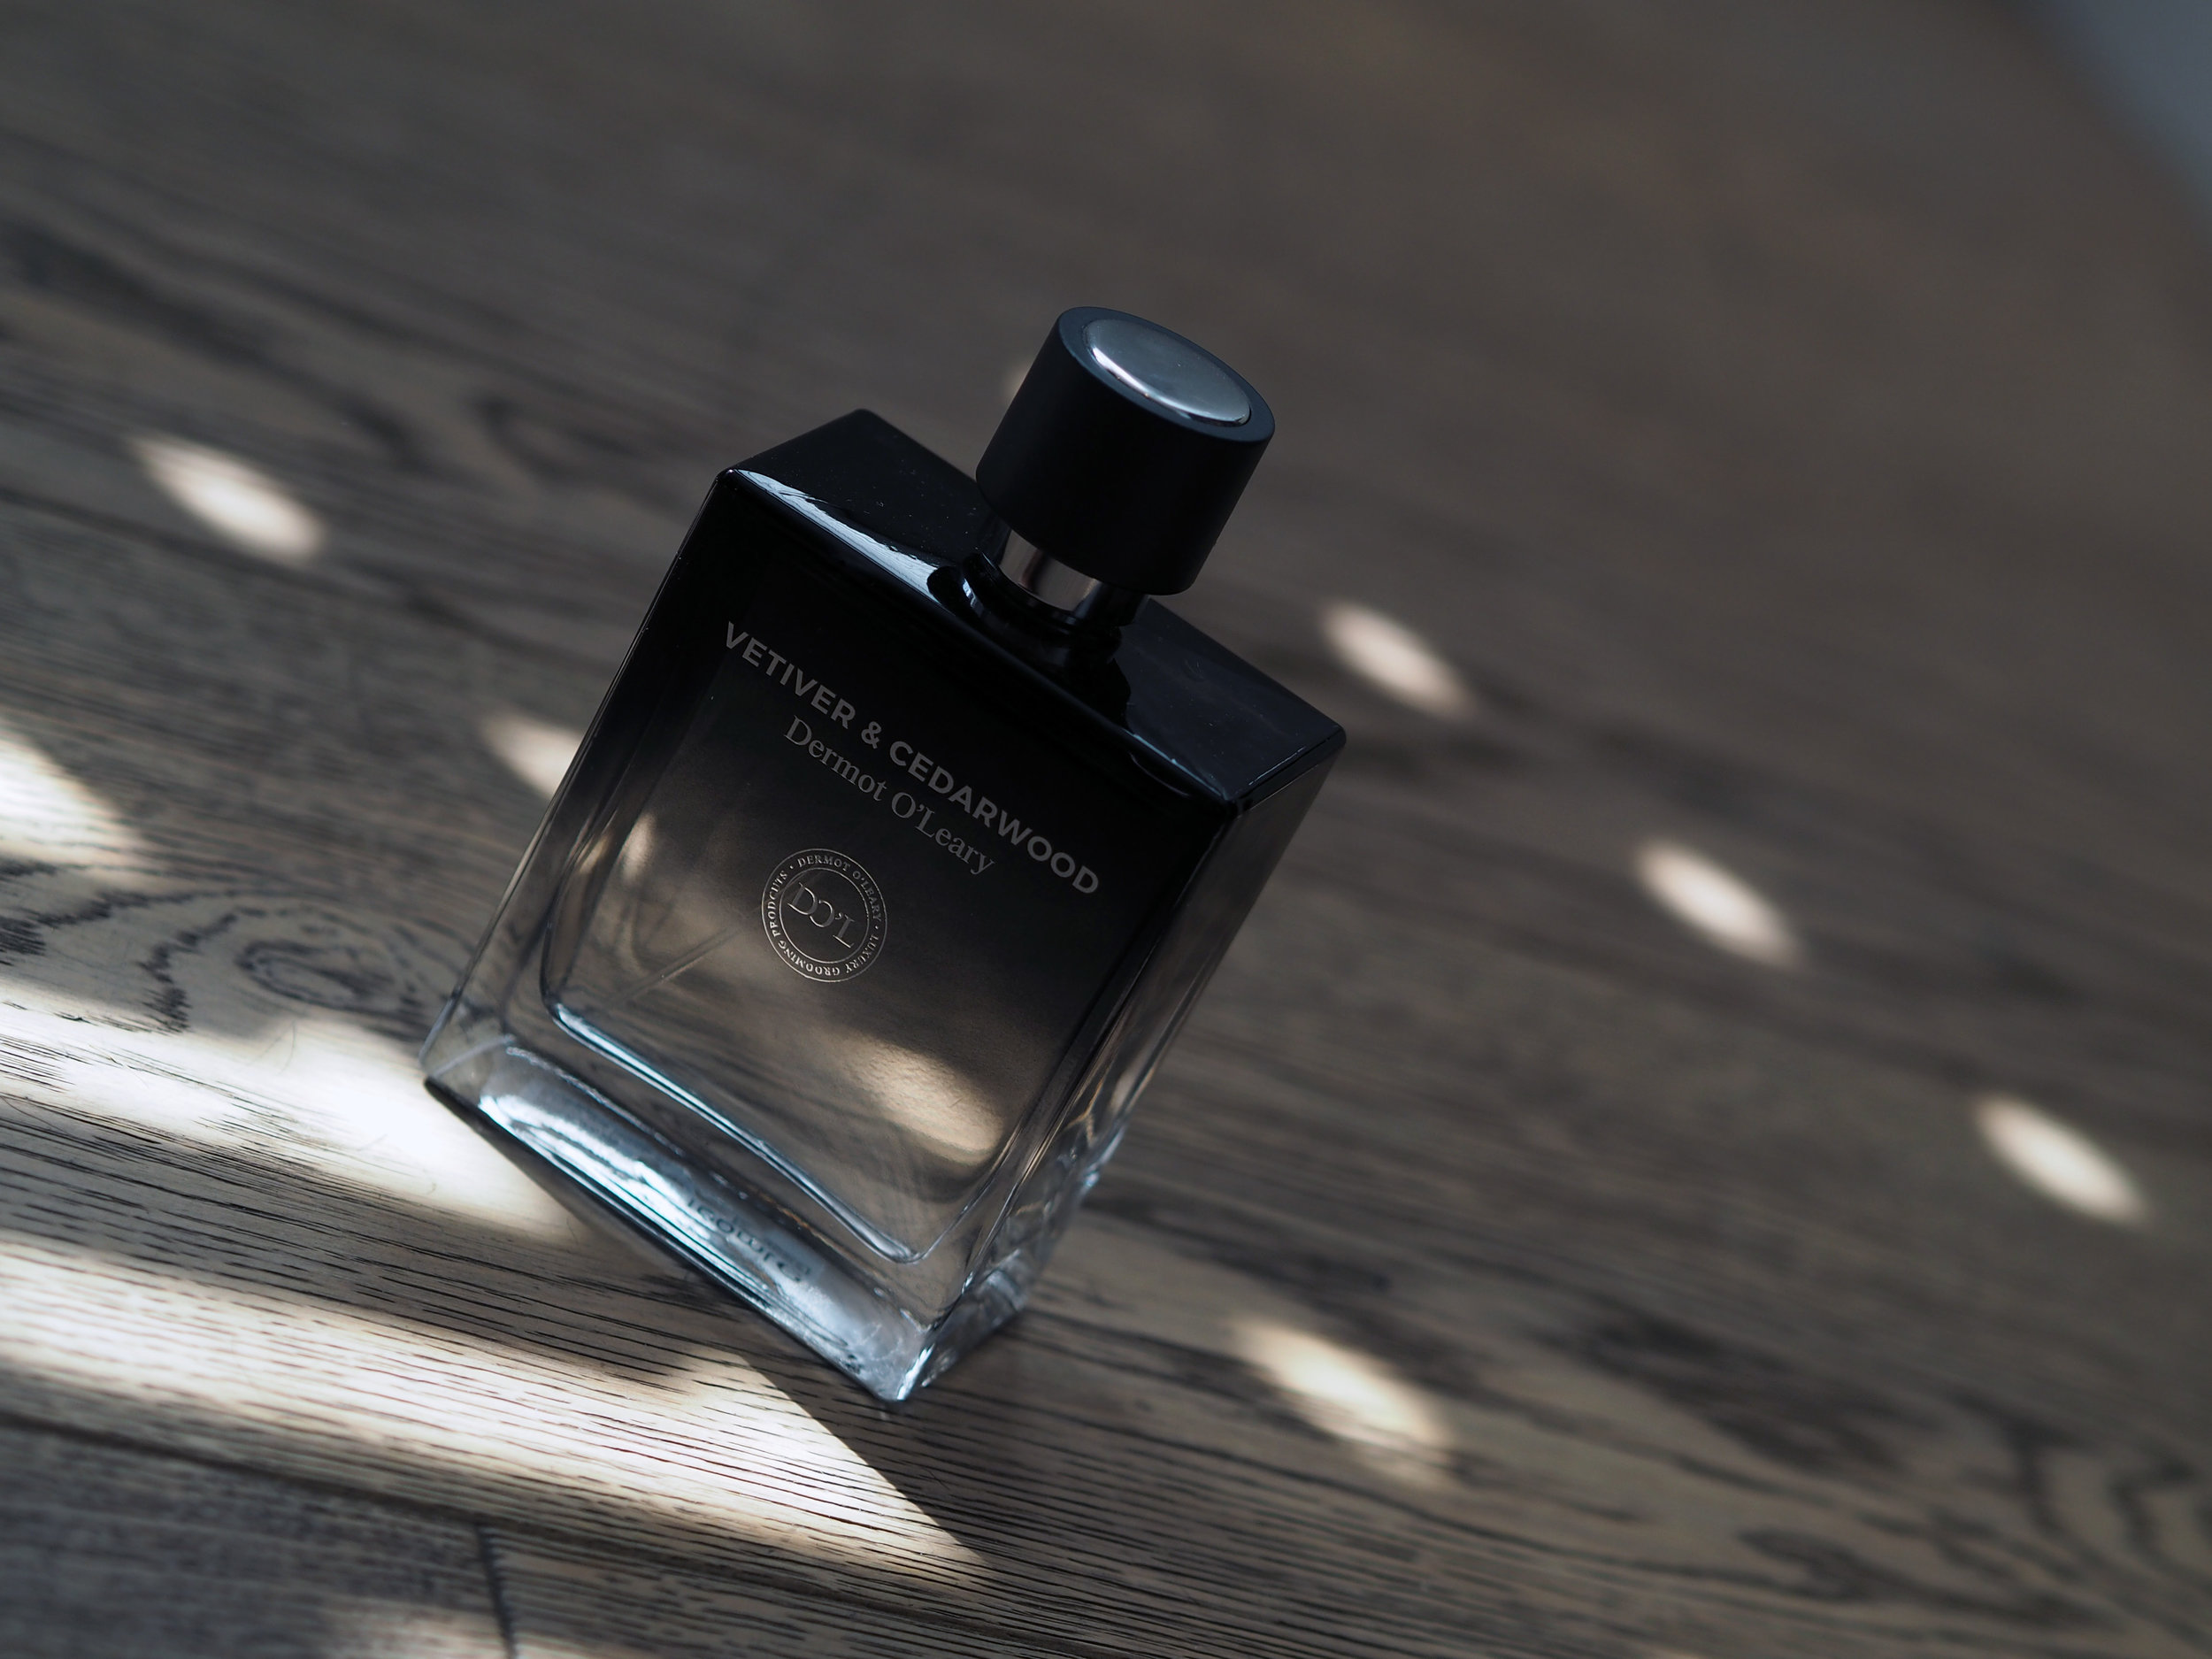 Dermot O'Leary Vetiver & Cedarwood